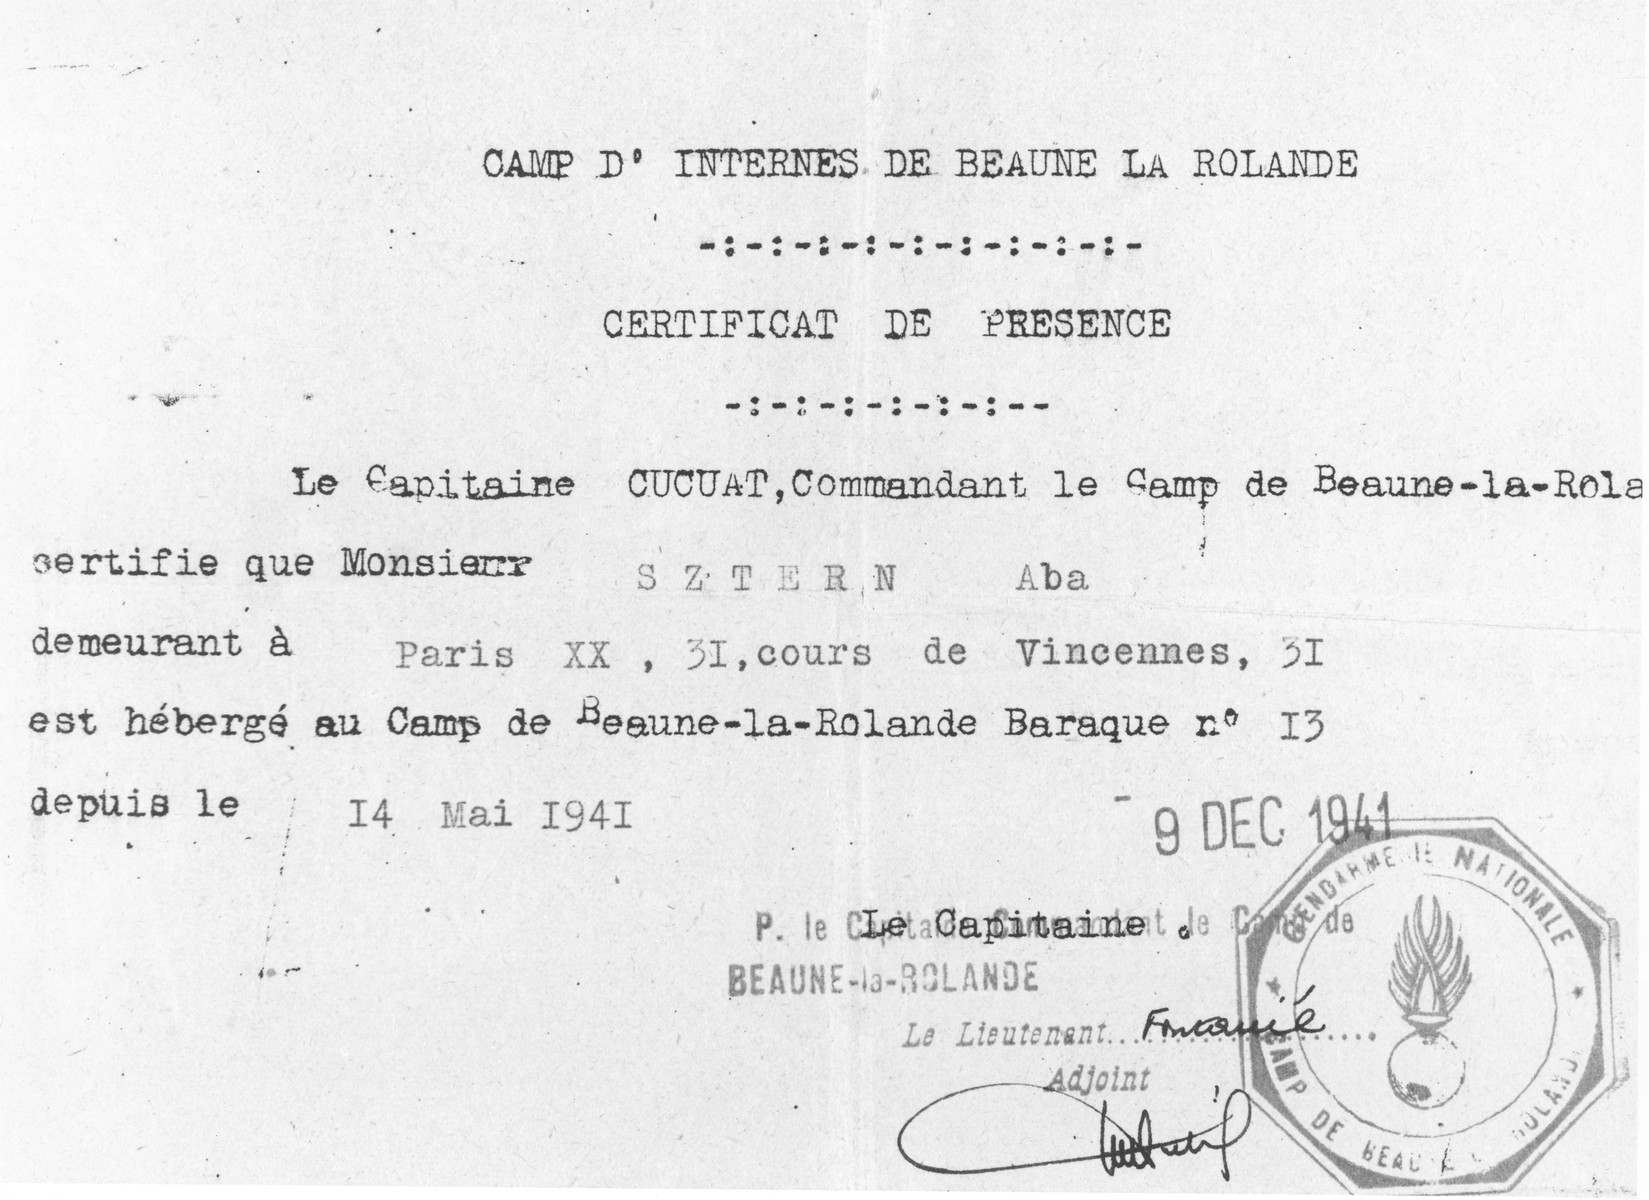 Document certifying that Aba Sztern has been a resident of the Beaune-la-Rolande internment camp since May 1941.  Aba Sztern was later deported to Auschwitz on convoy #5 and died at the age of 19.  He was born in 1921.